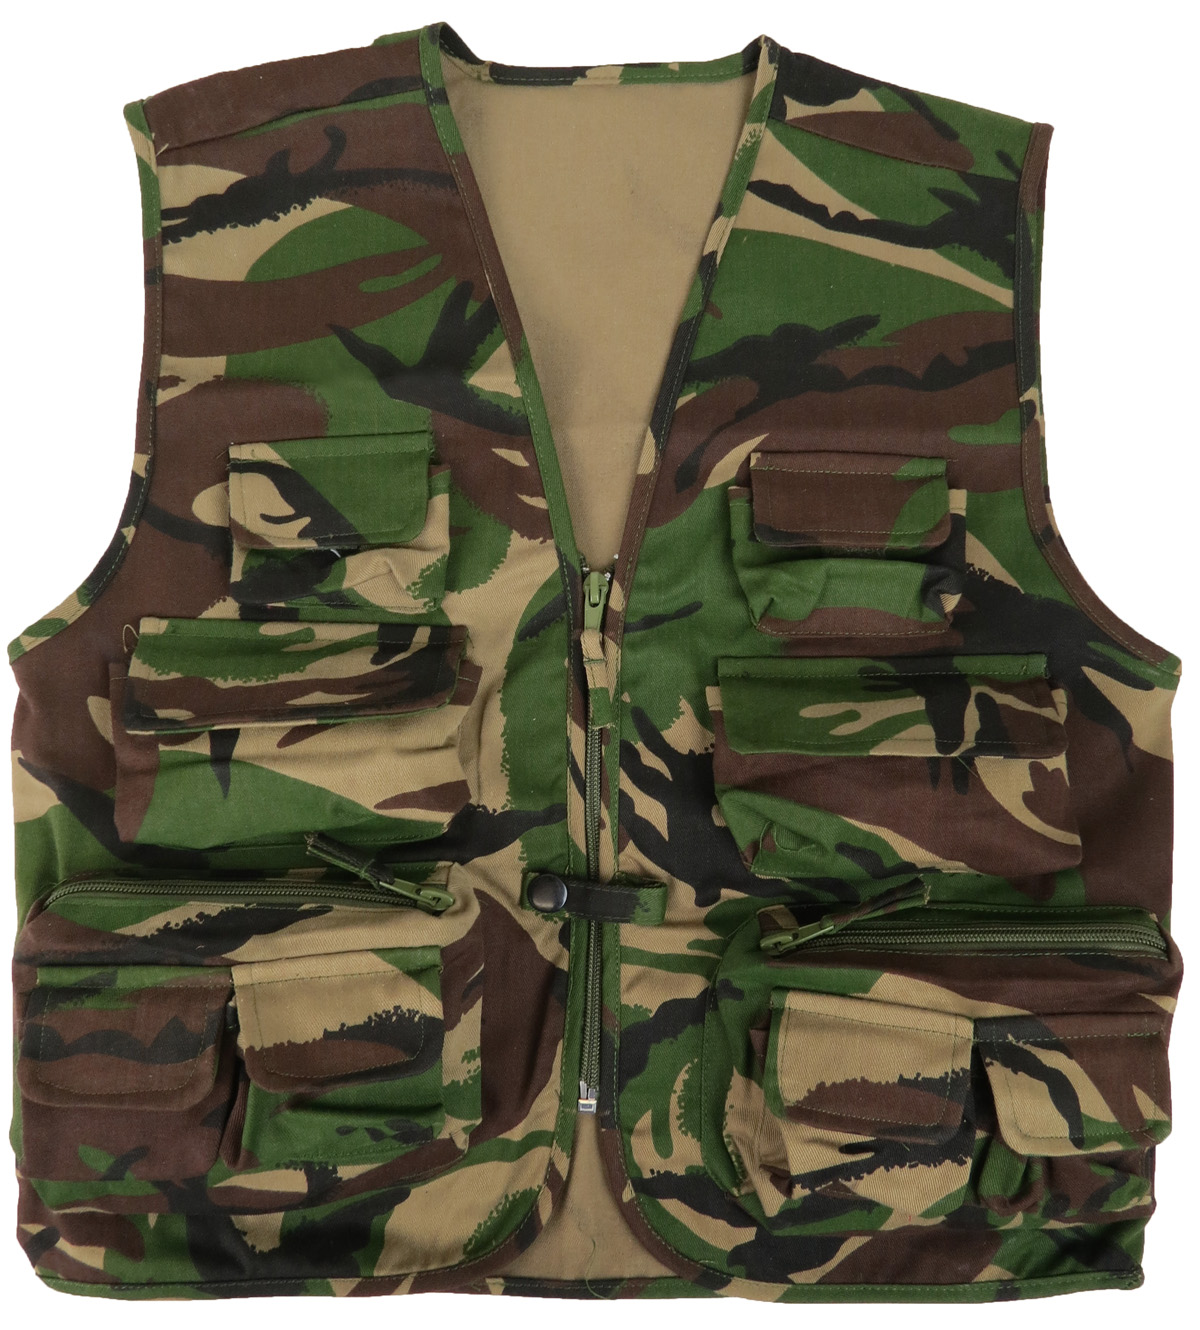 Choose from a wide selection of kid's camouflage clothing. Shop today for the best deals on kid's hunting clothes and kid's camo, all at Cabela's. Life Jackets & Vests; Related Survival & Navigation Men's Boat & Water Shoes Men's Rainwear Women's Boat & Water Shoes Kids.